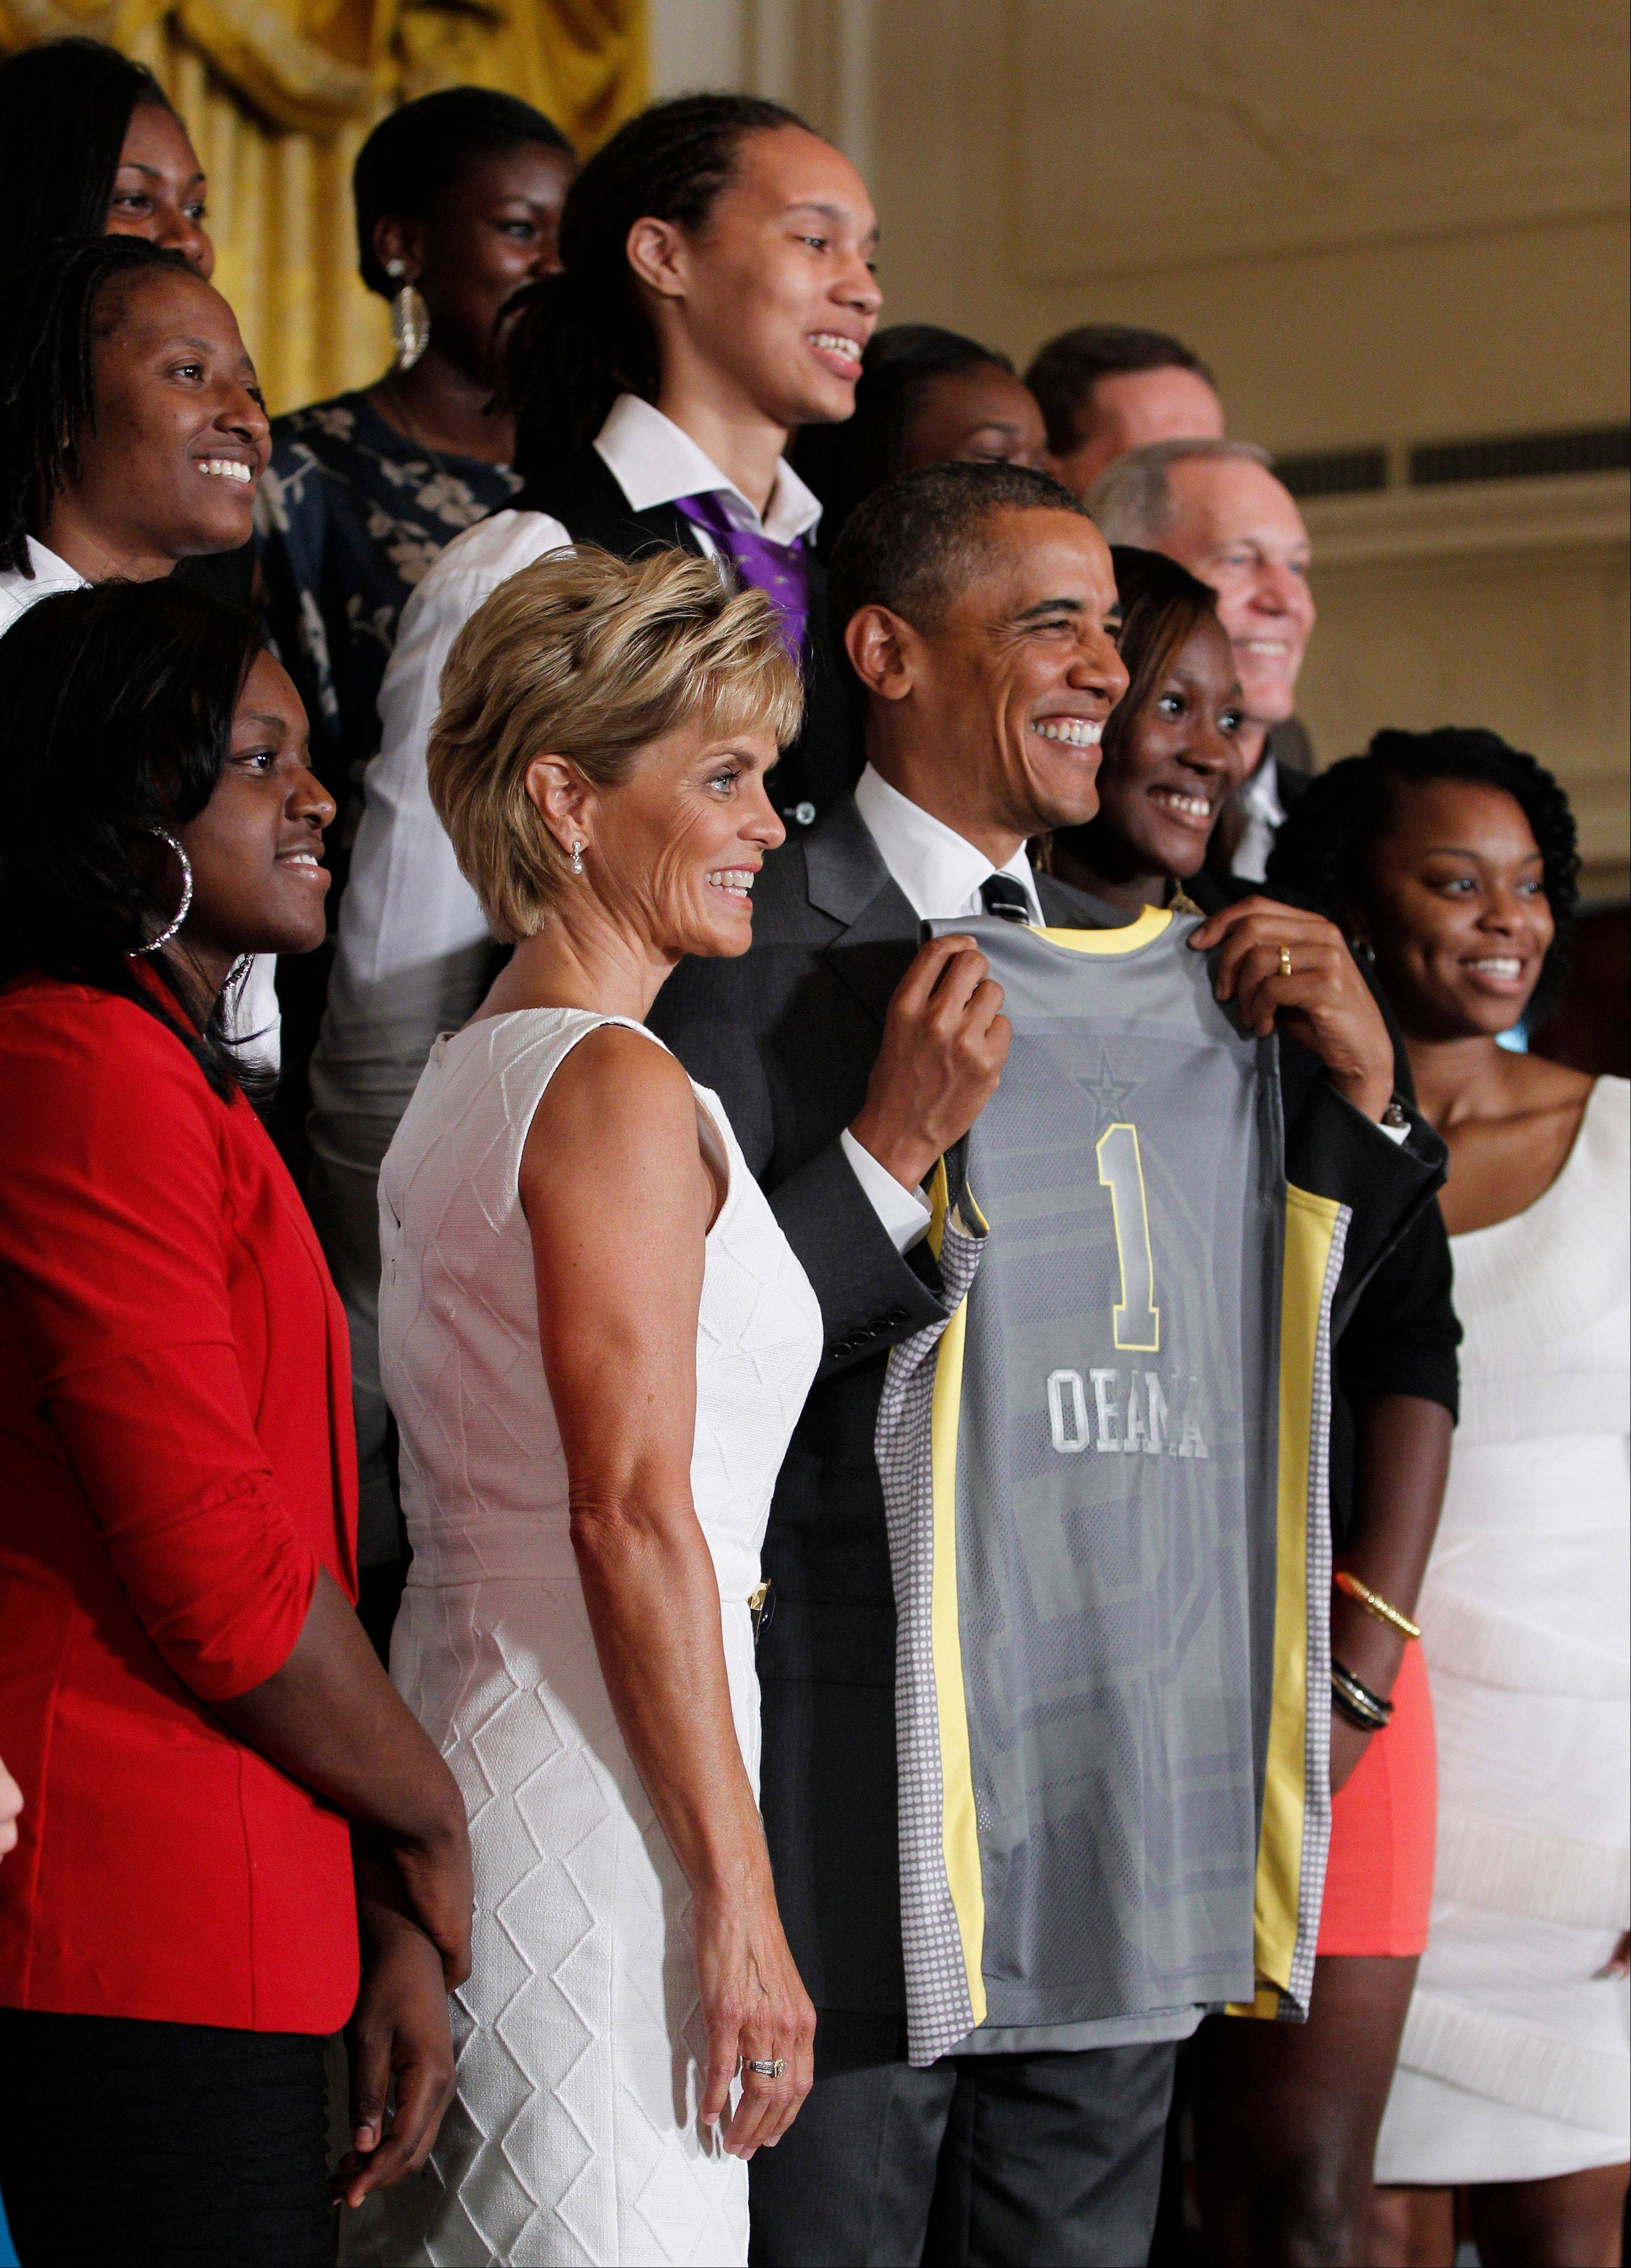 President Barack Obama, center, holds up a jersey given to him by members of the 2012 NCAA Women's basketball champion Baylor University Bears during a ceremony at the White House Wednesday.